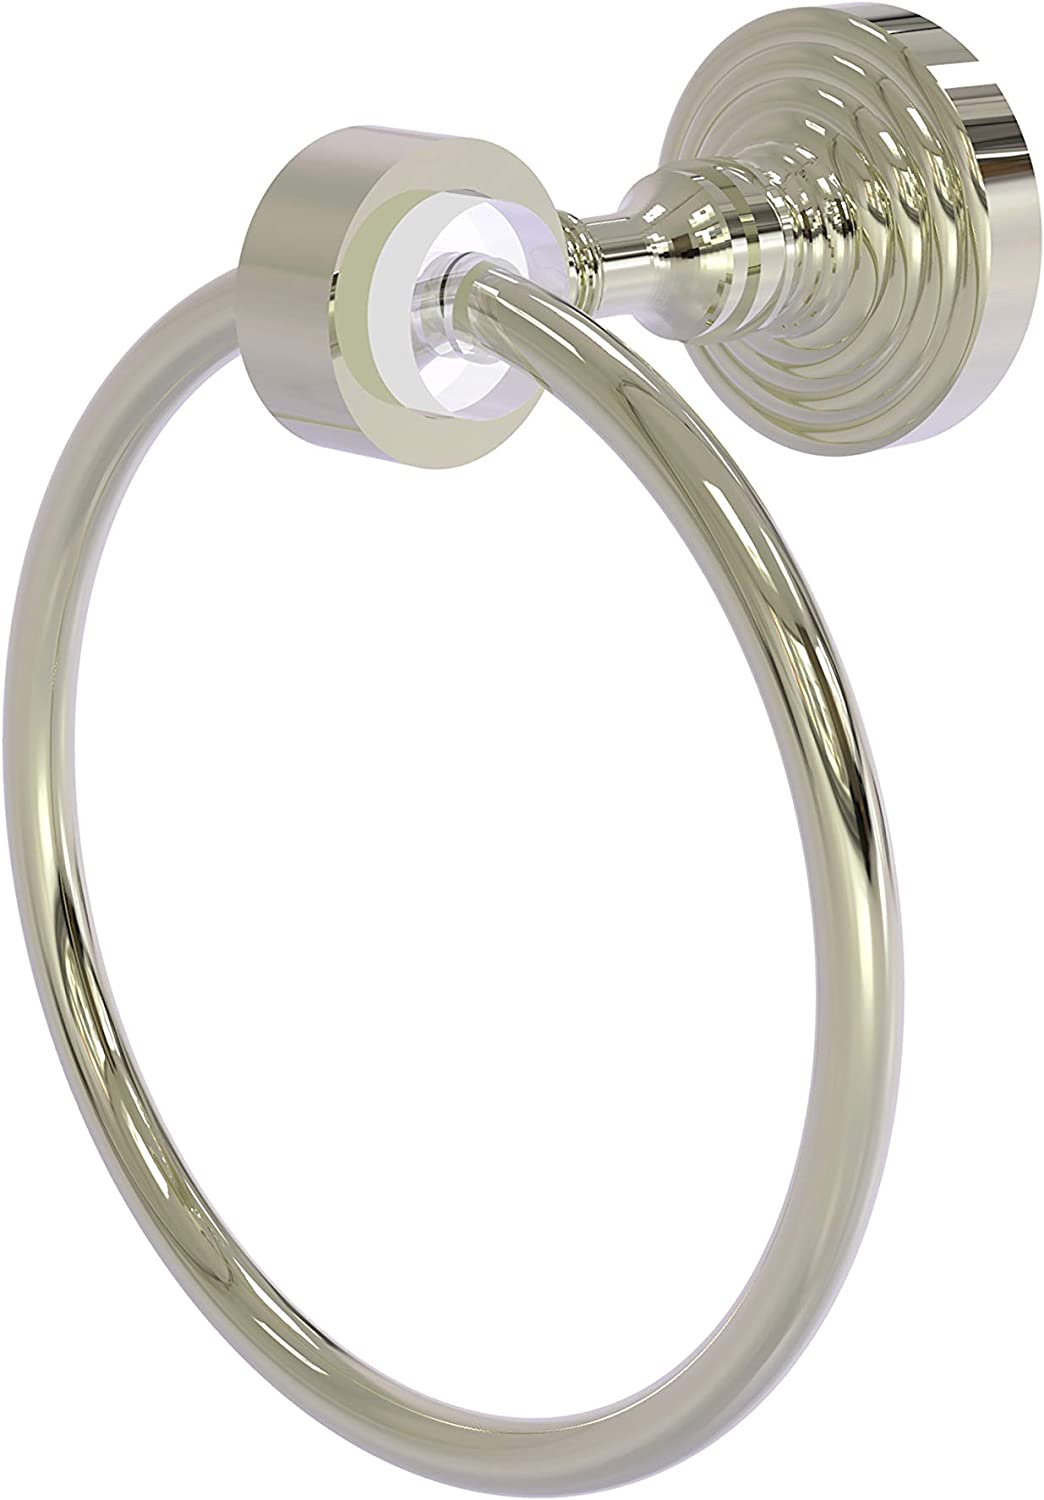 Allied Brass PG-16-PNI Towel Rings, Polished Nickel